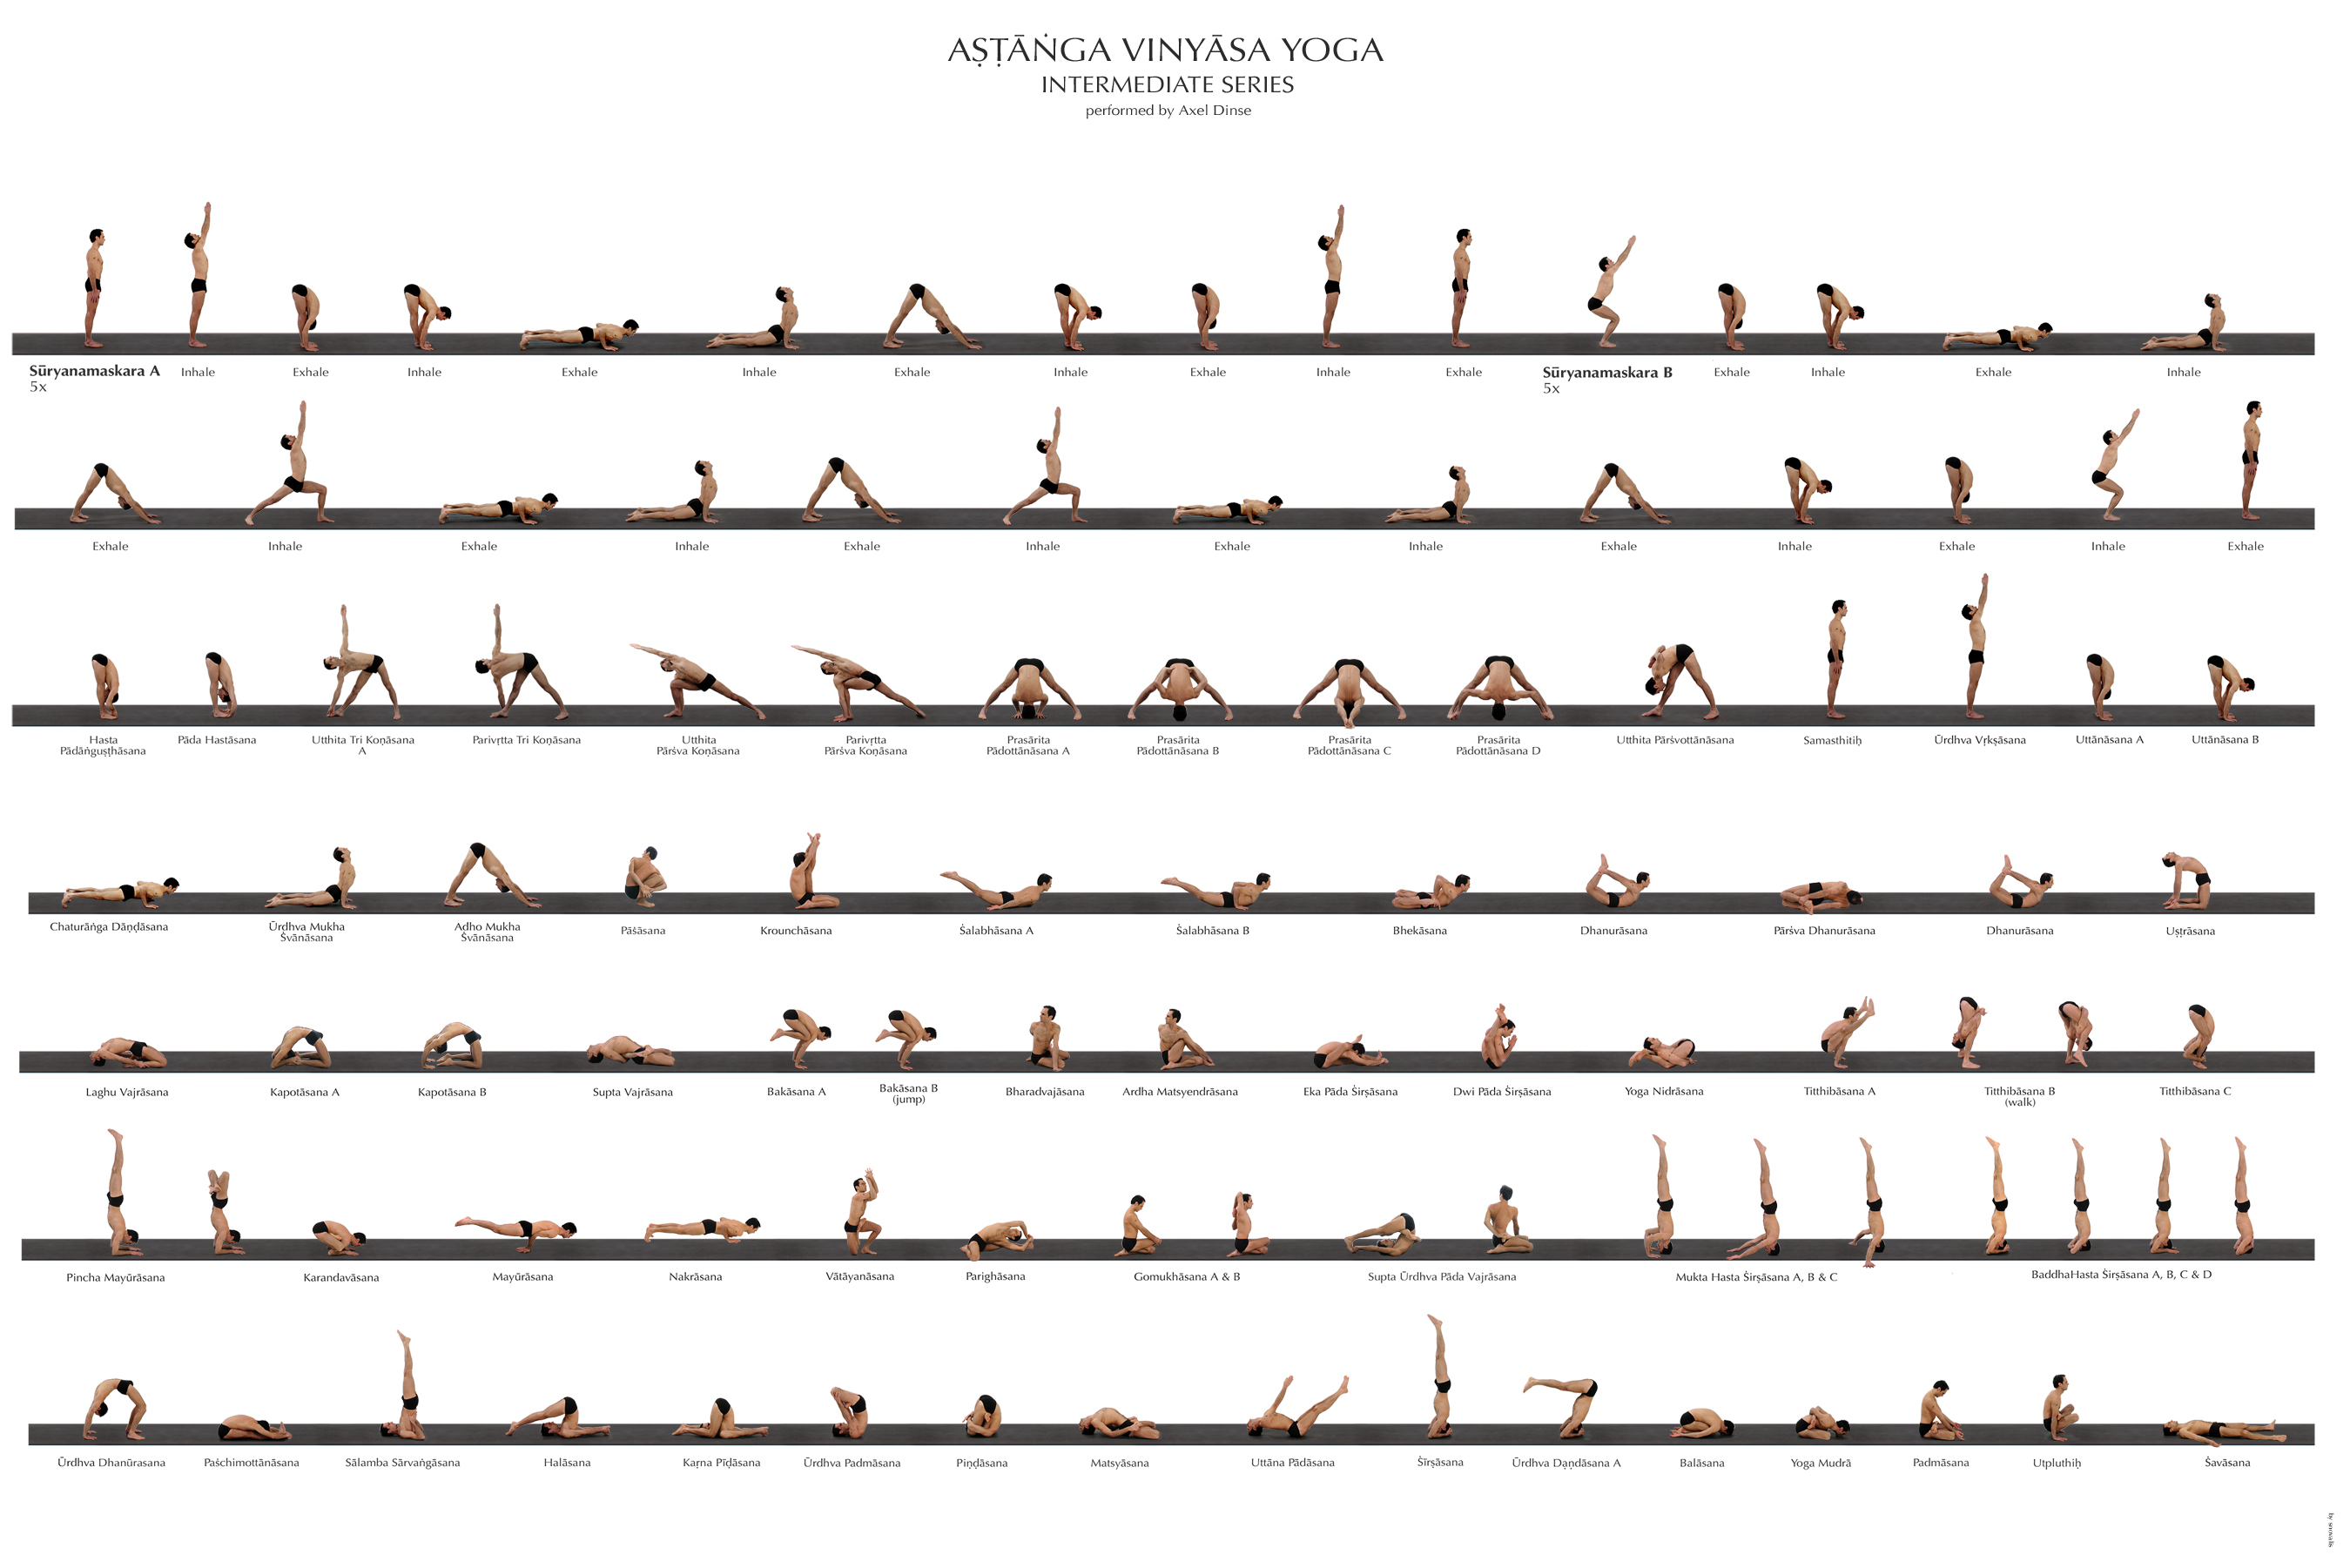 17 Best ideas about Ashtanga Vinyasa Yoga on Pinterest | Ashtanga ...